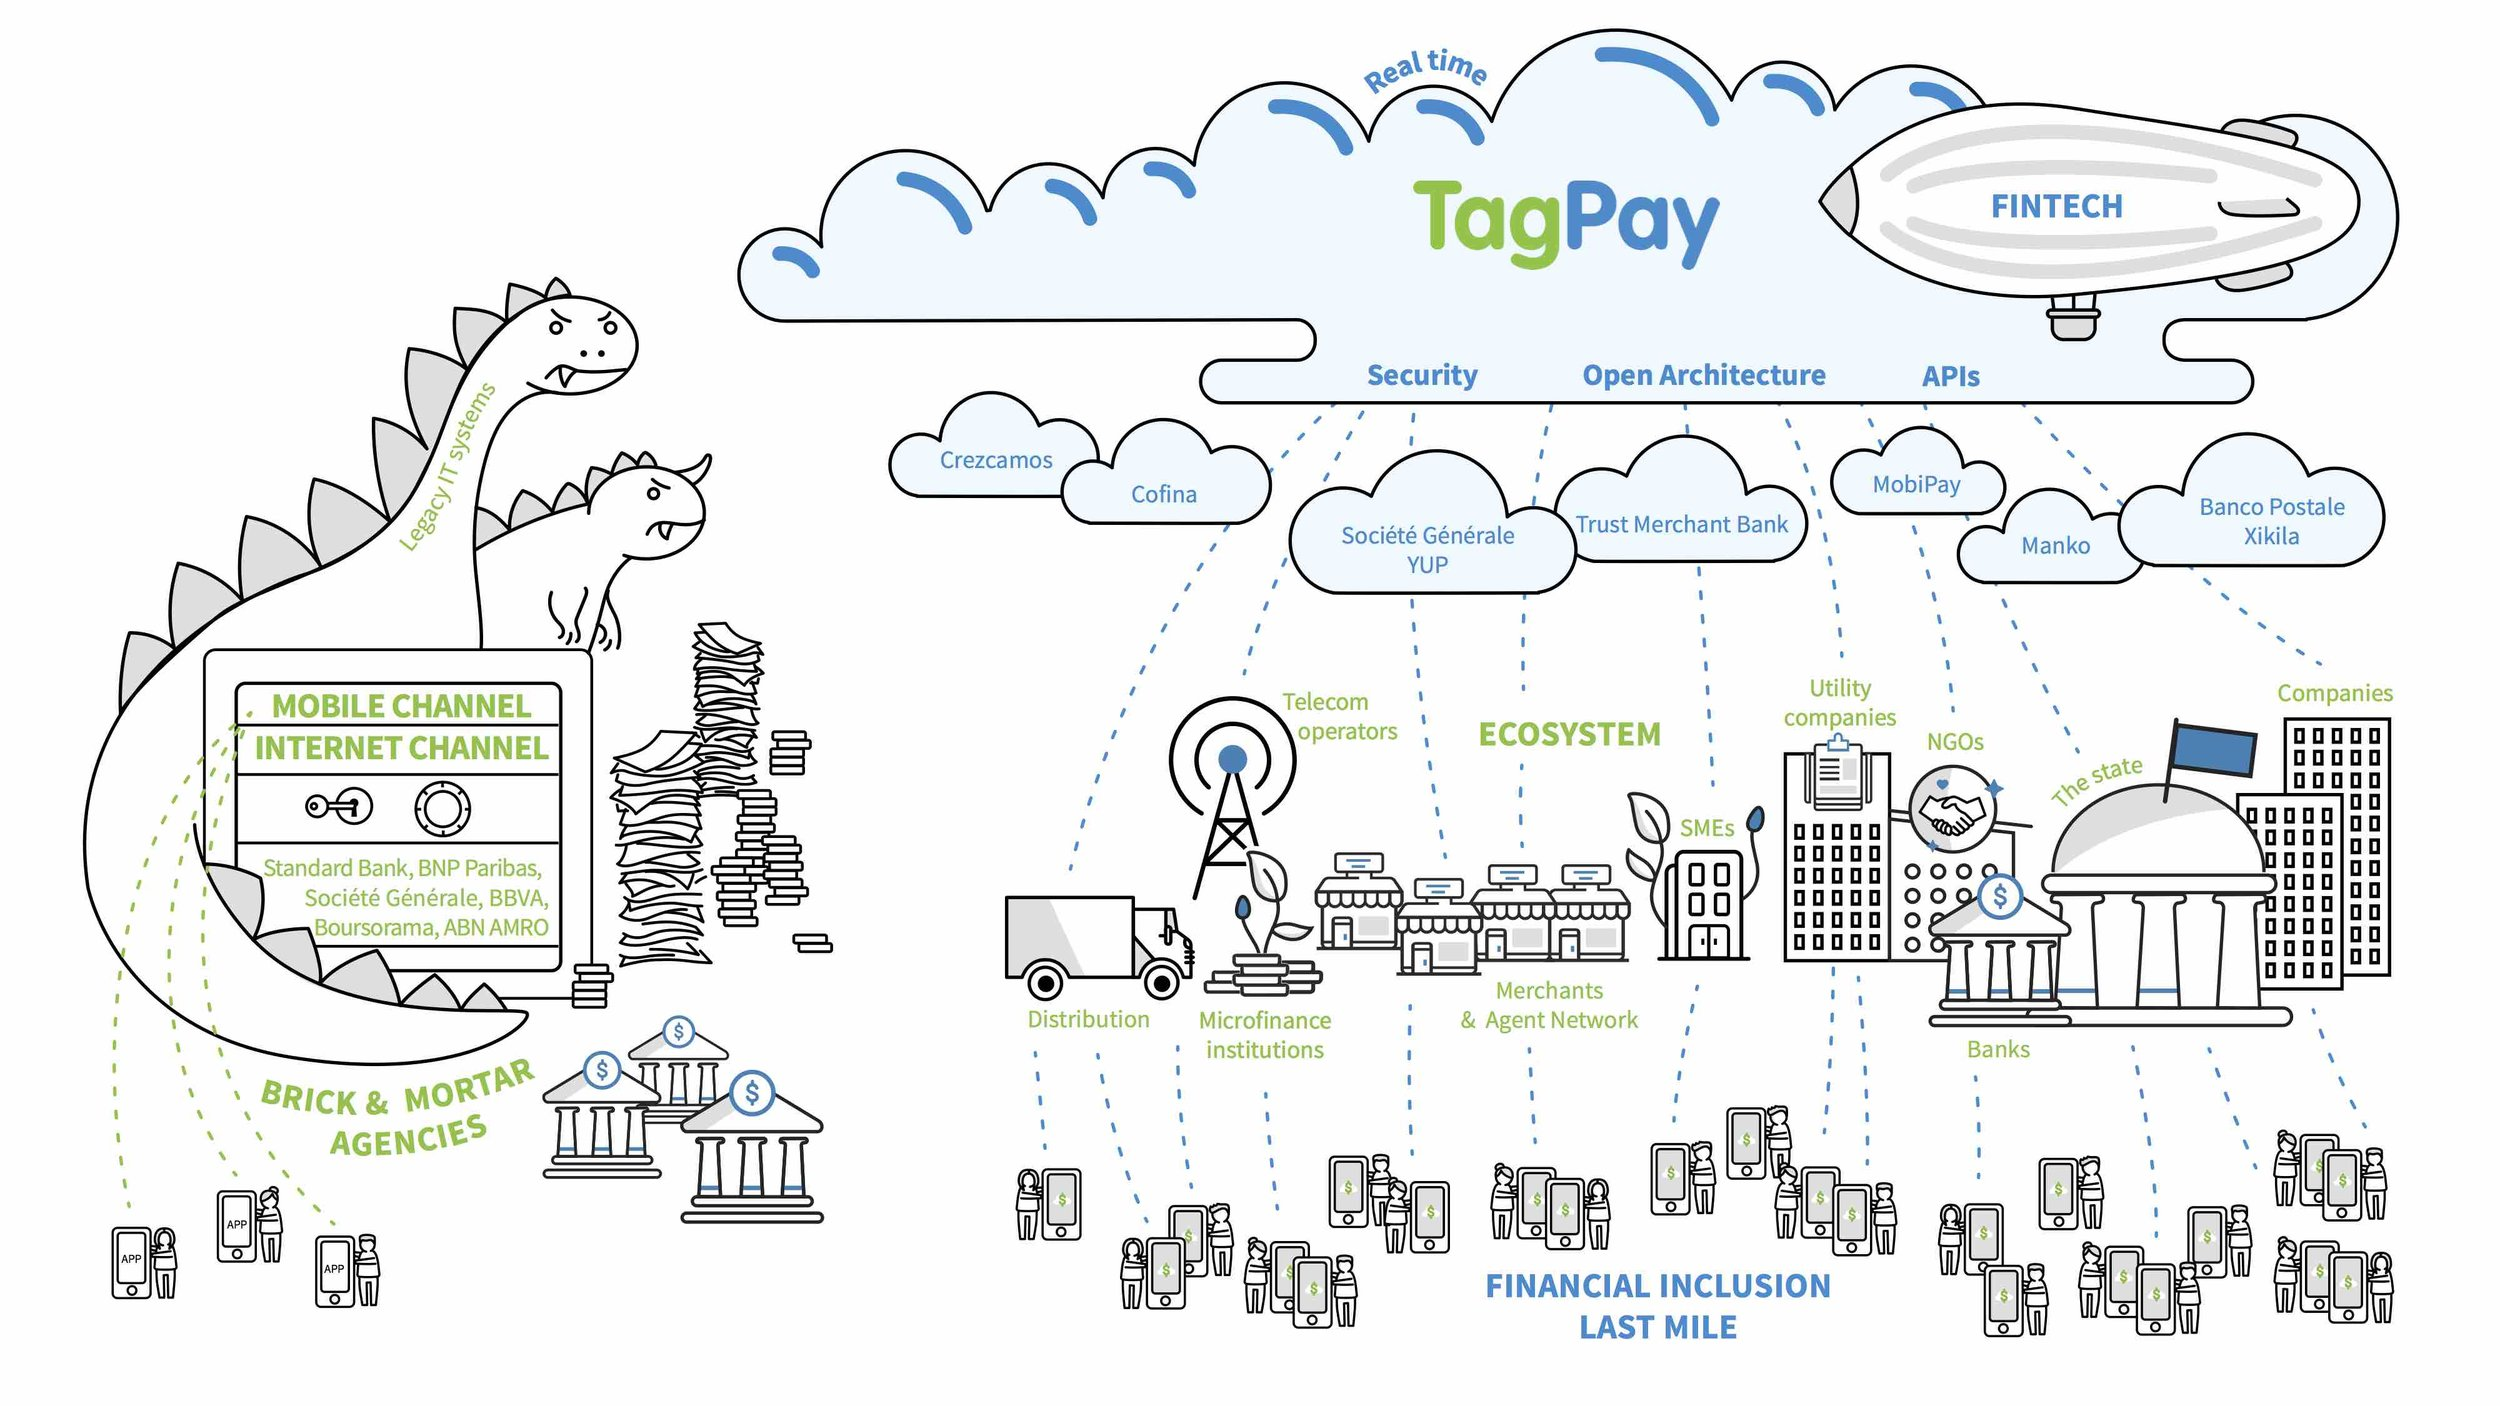 vaults-to-ecosystems-tagpay